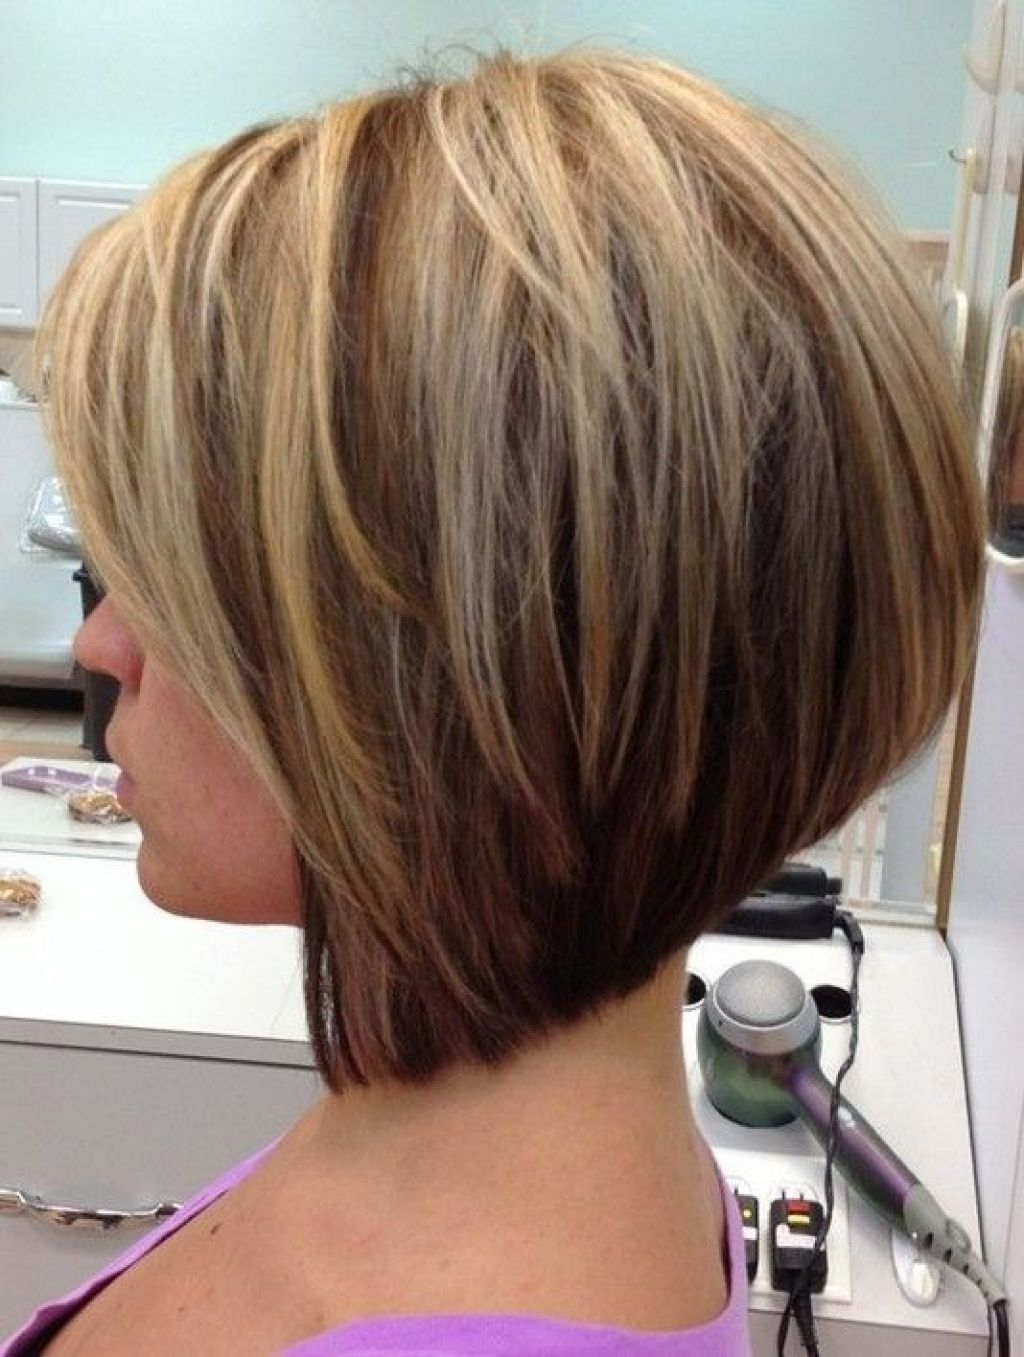 Women Inverted Bob Hairstyles Hairstyle Super Hot Stacked Bob Regarding Inverted Short Haircuts (View 25 of 25)